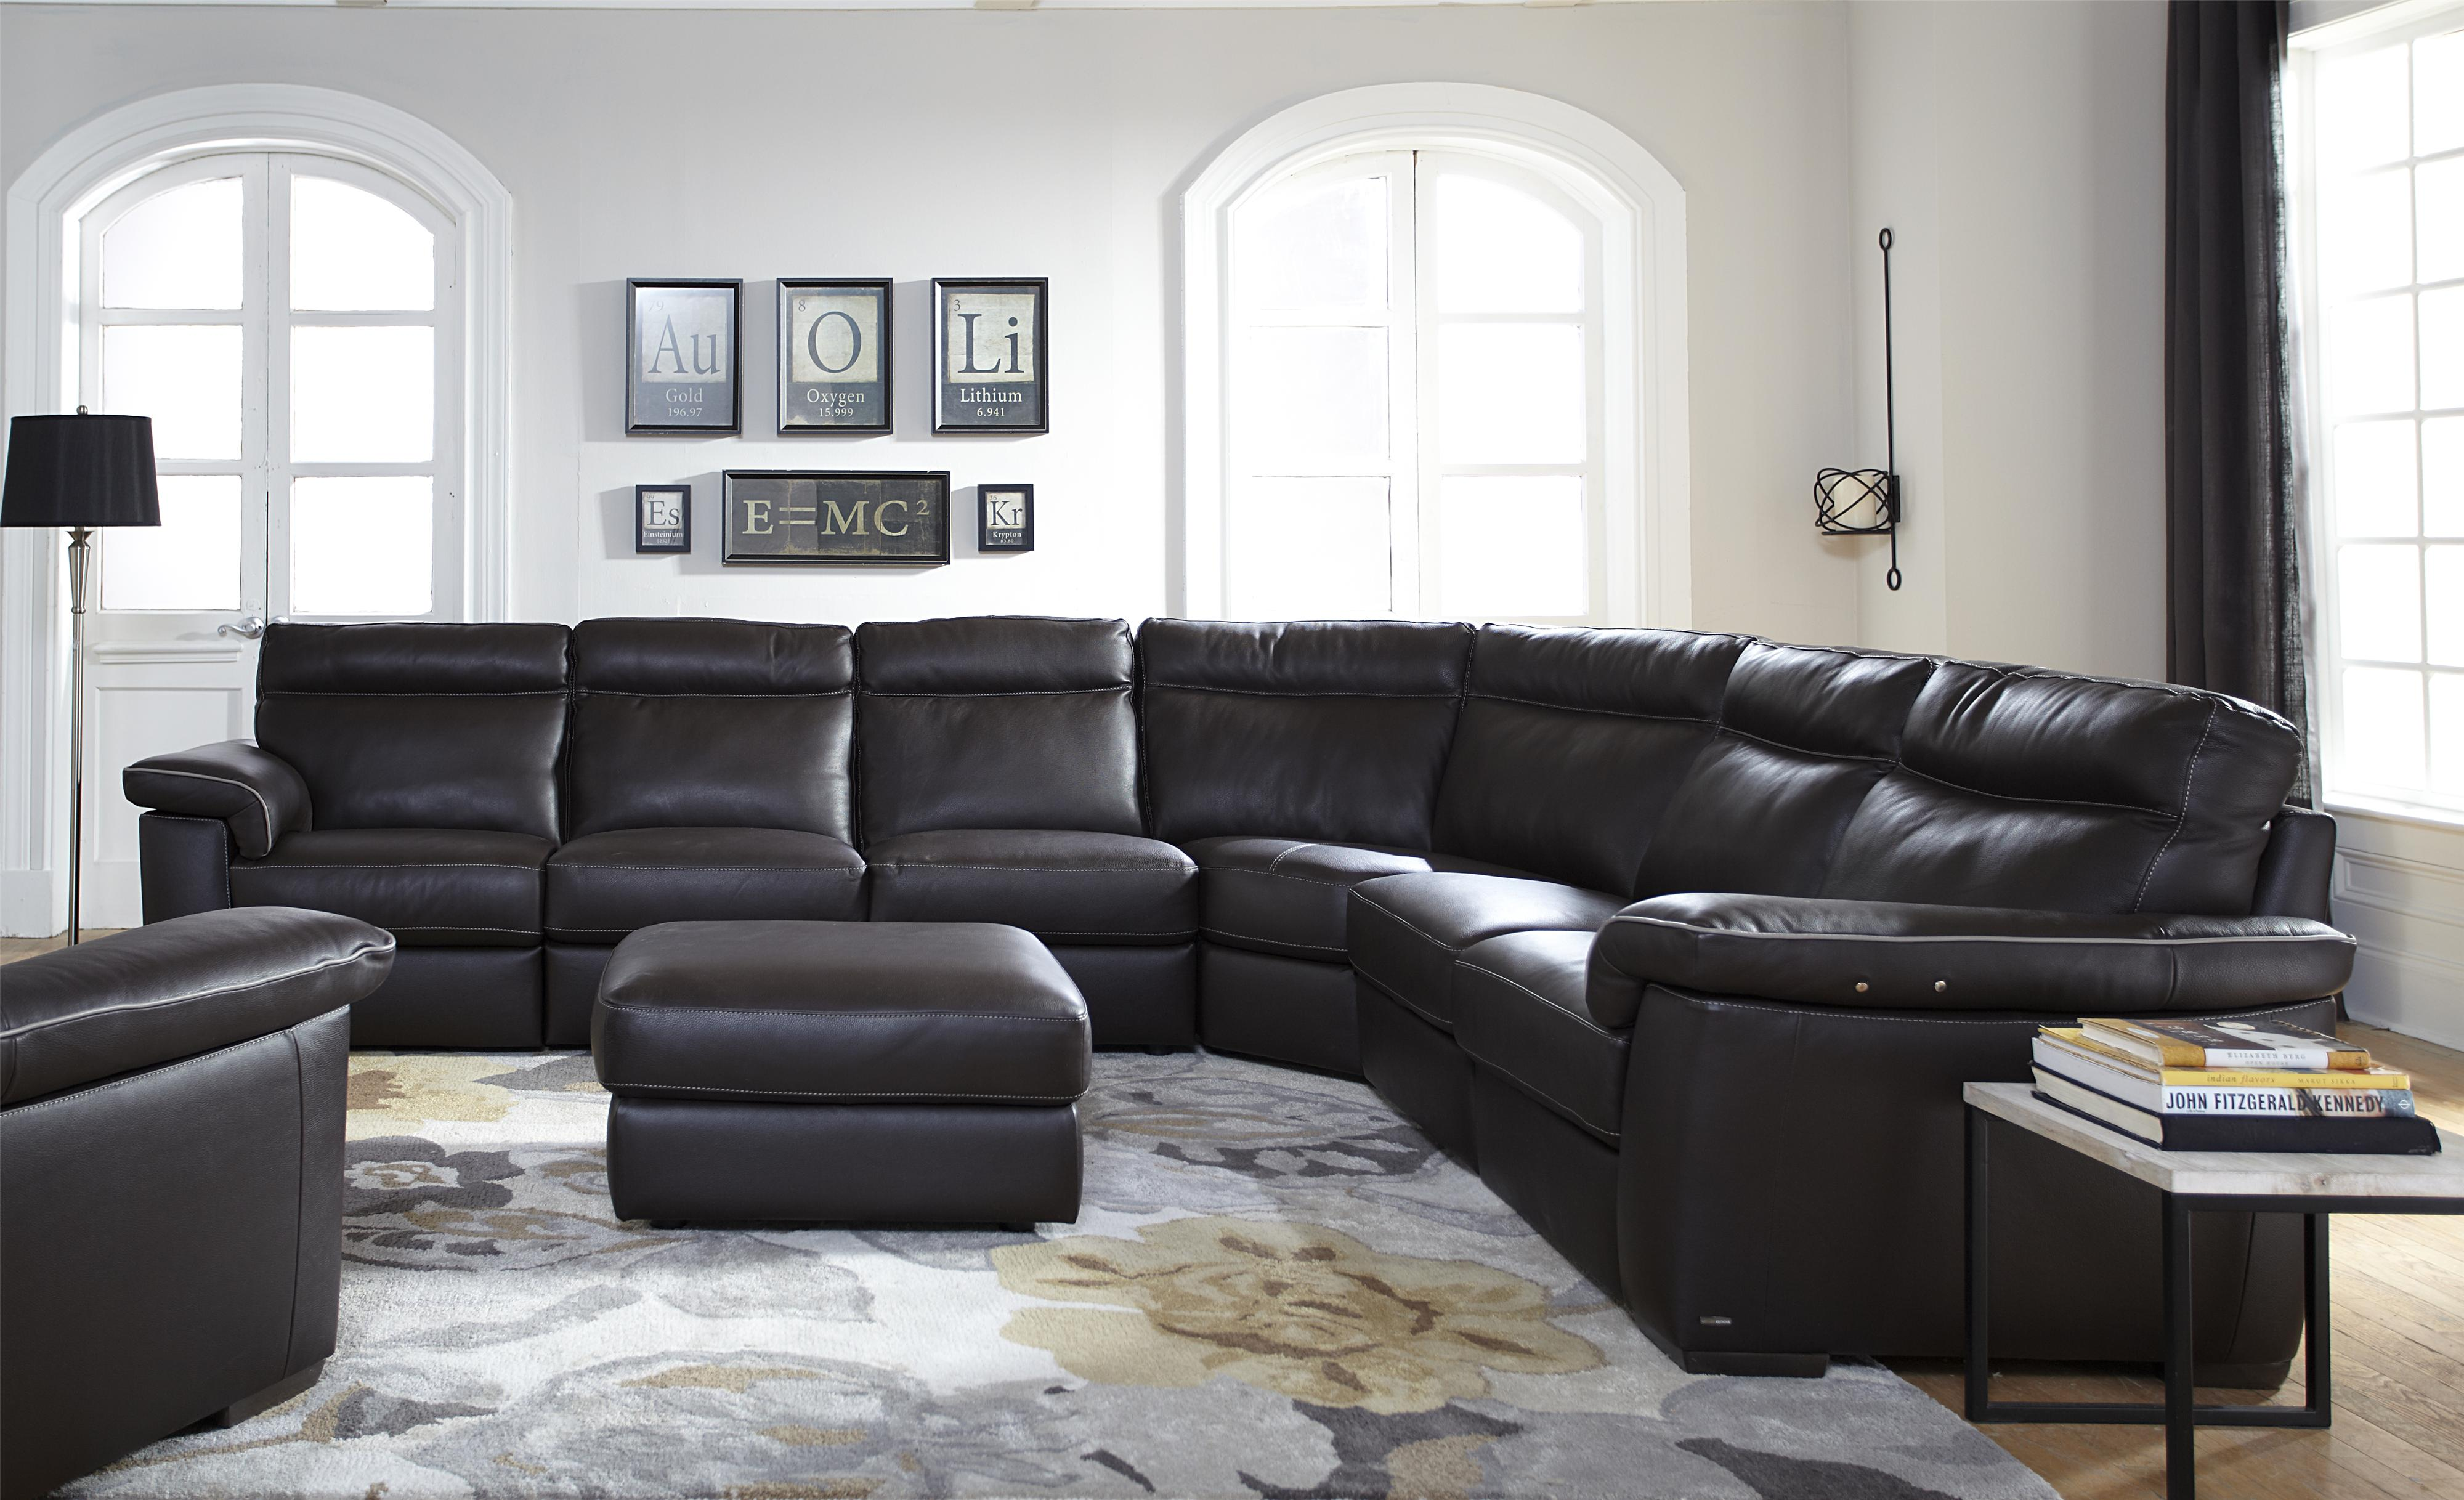 Natuzzi Editions B757 Three Piece Stationary Sectional Sofa With Left Arm  Bumper   Wilsonu0027s Furniture   Sectional Sofas Bellingham, Ferndale, Lynden,  ...